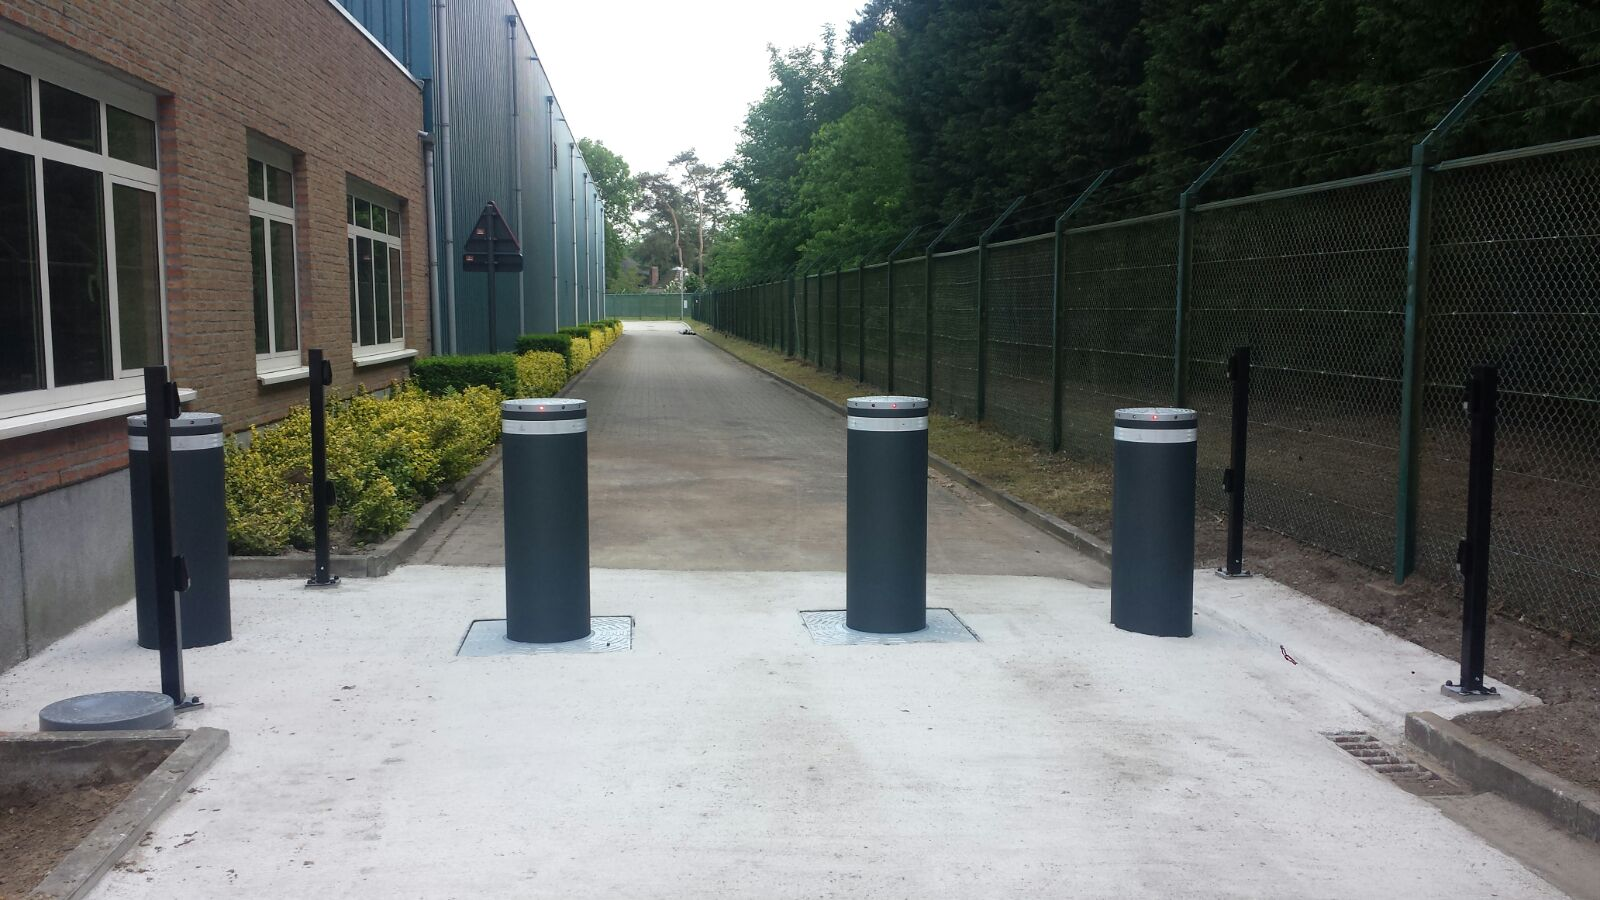 Faac j355 M30 anti terreur bollards